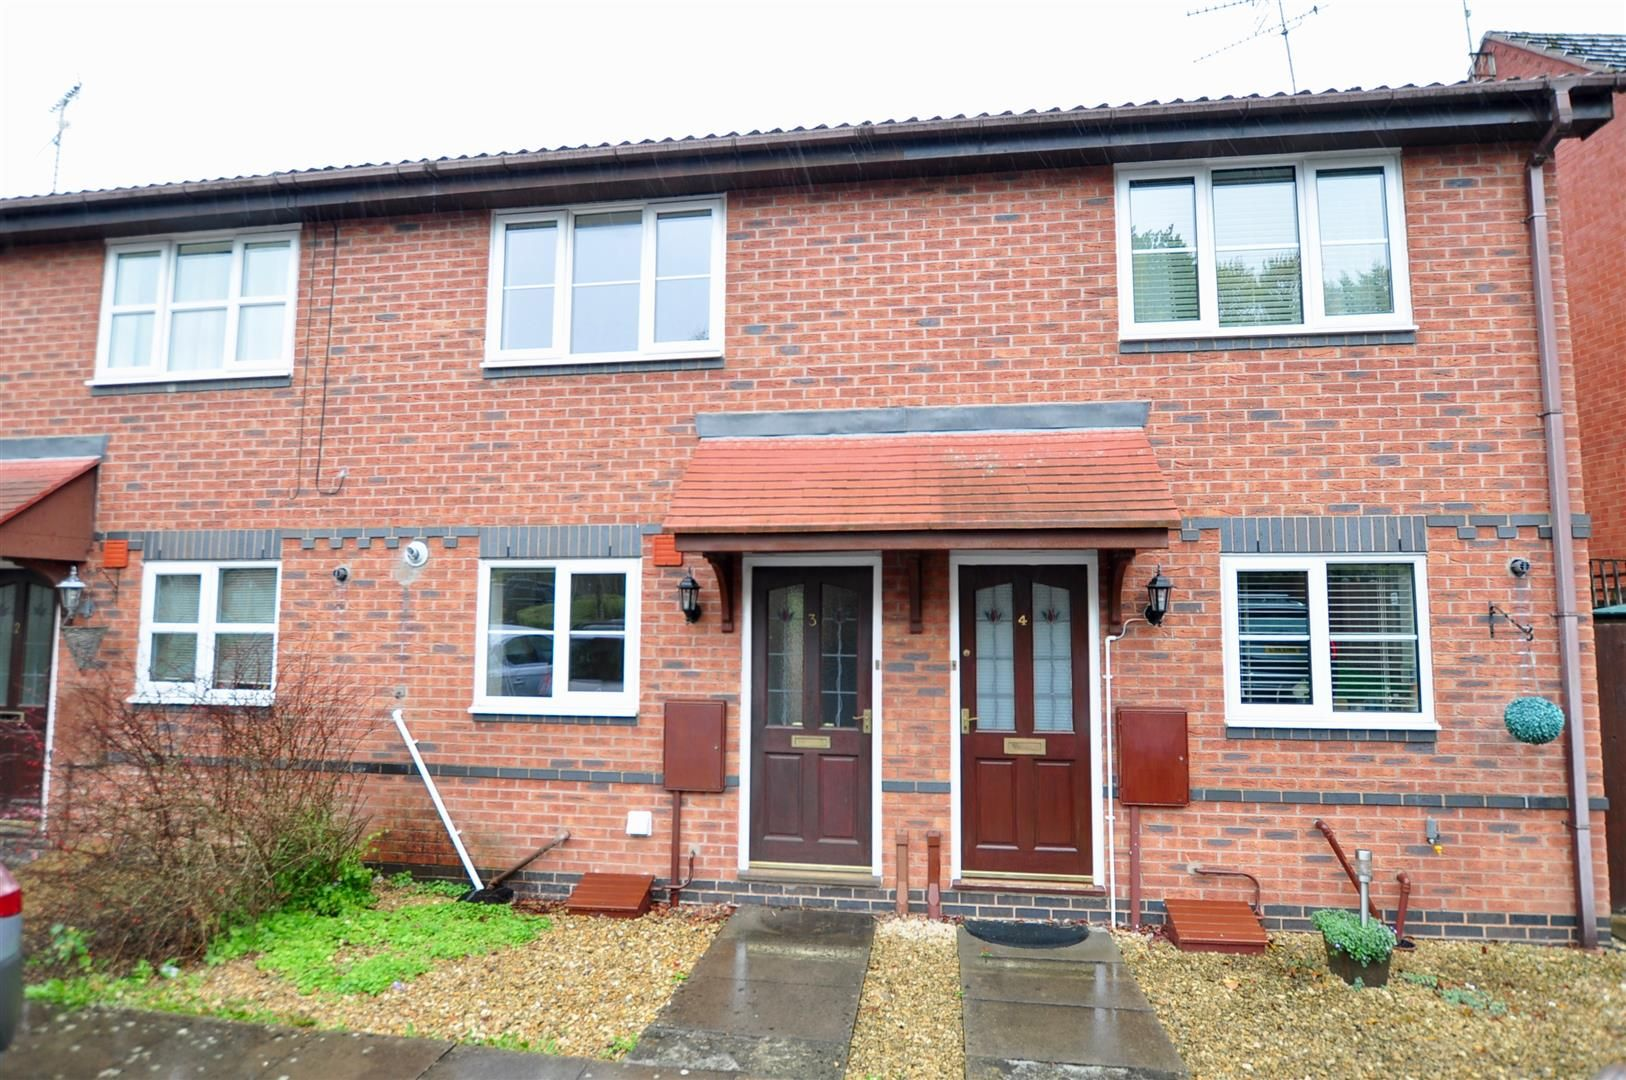 2 bed terraced for sale in Hagley 10